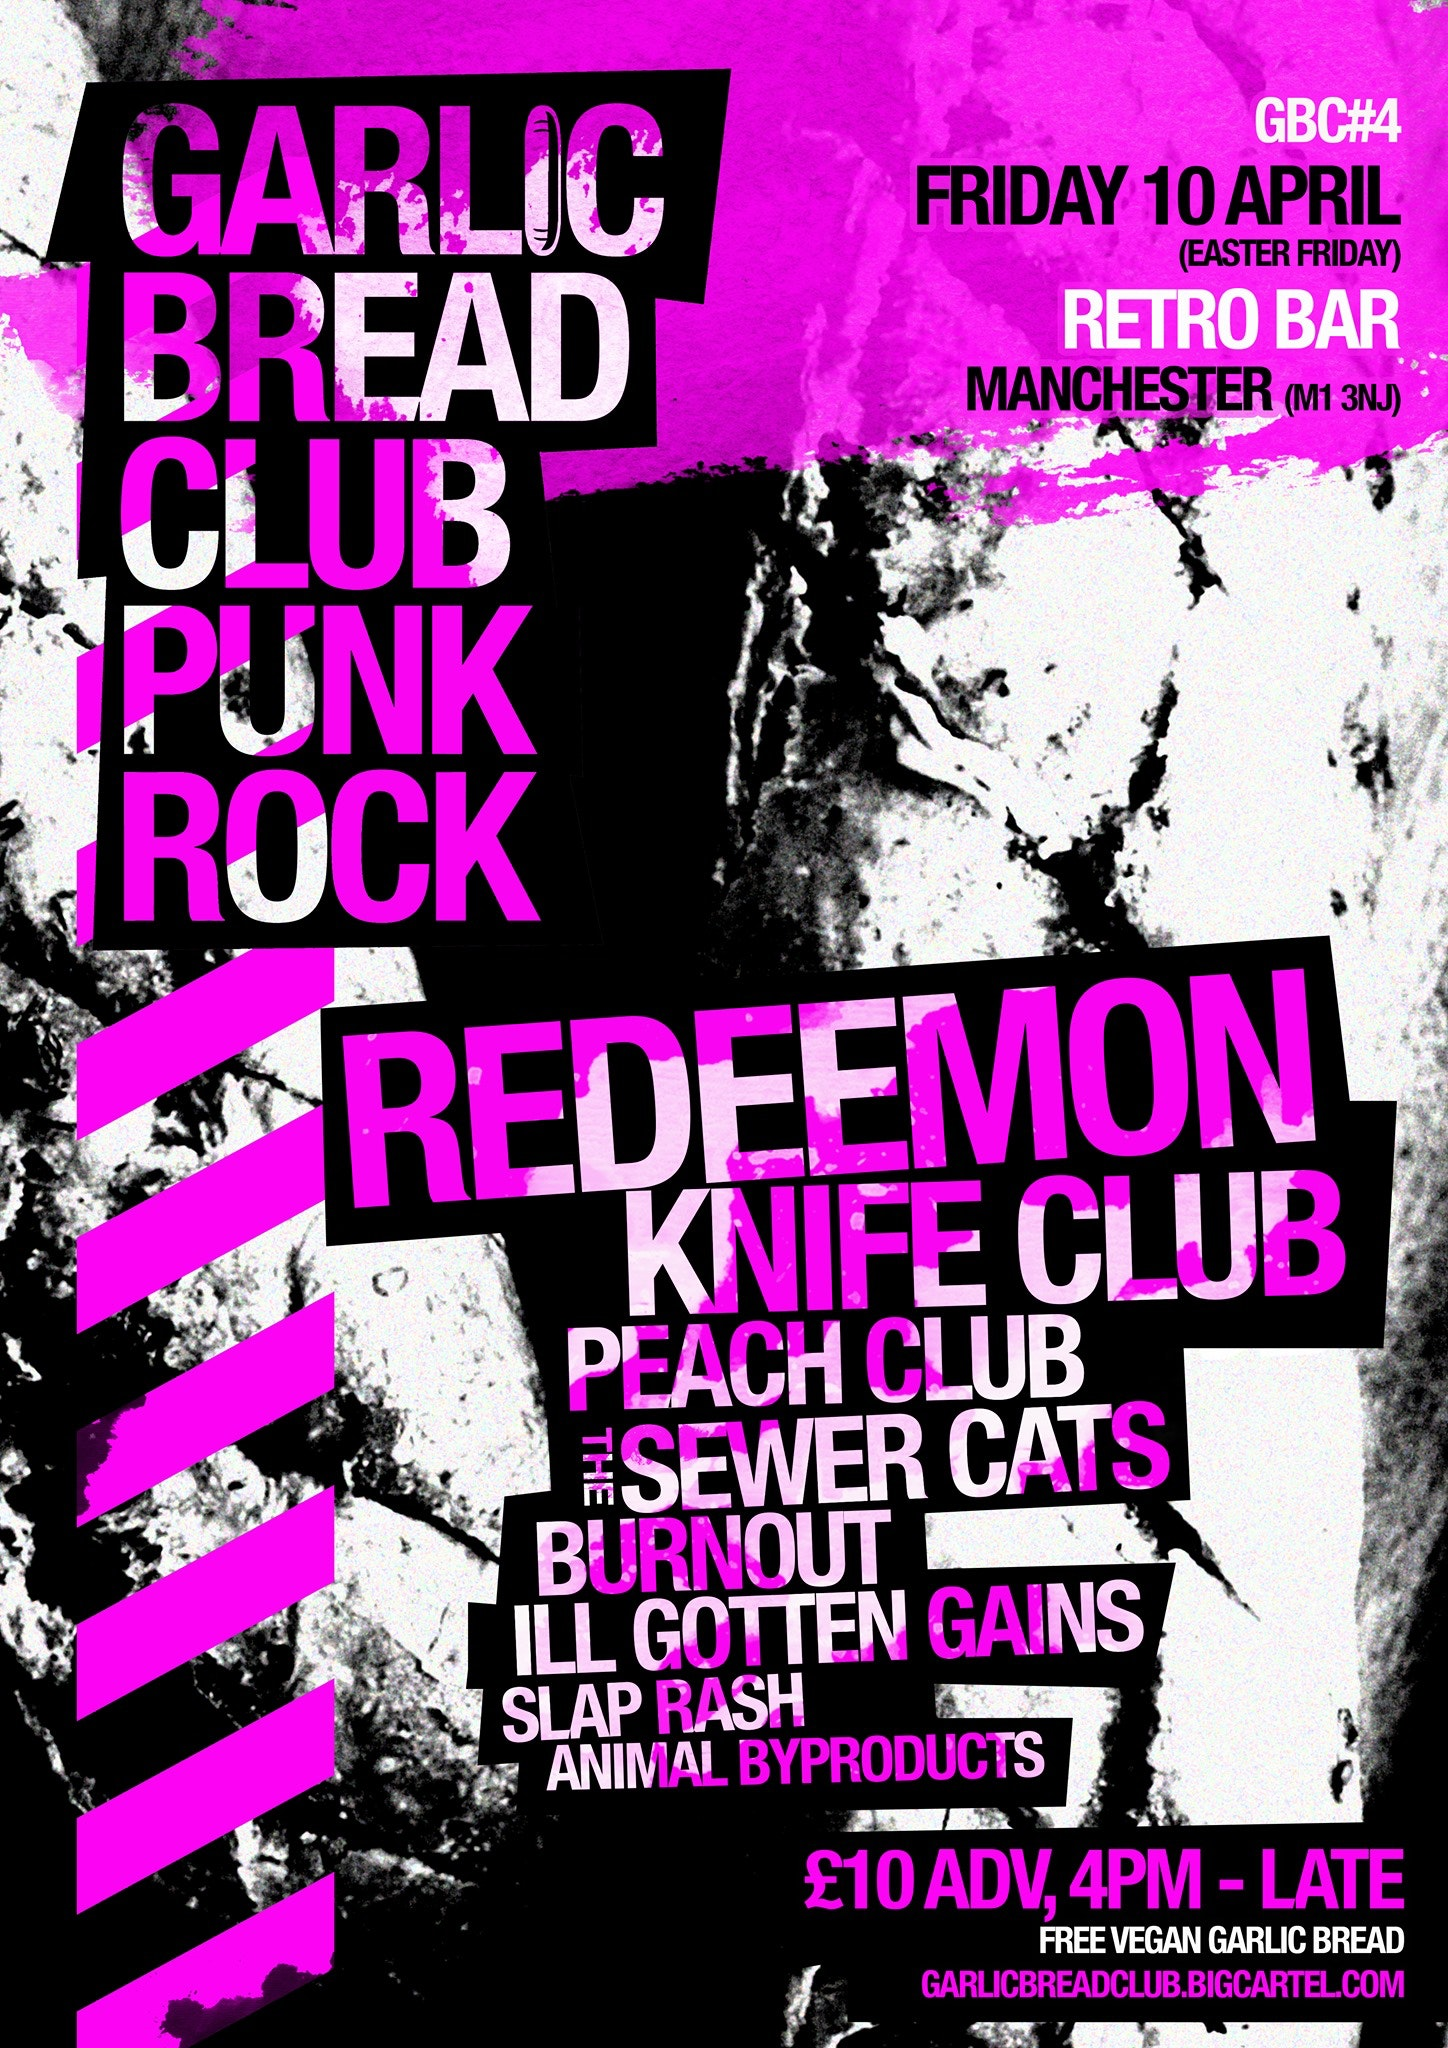 GBC #4: Friday 10 April: Redeemon, Knife Club + more